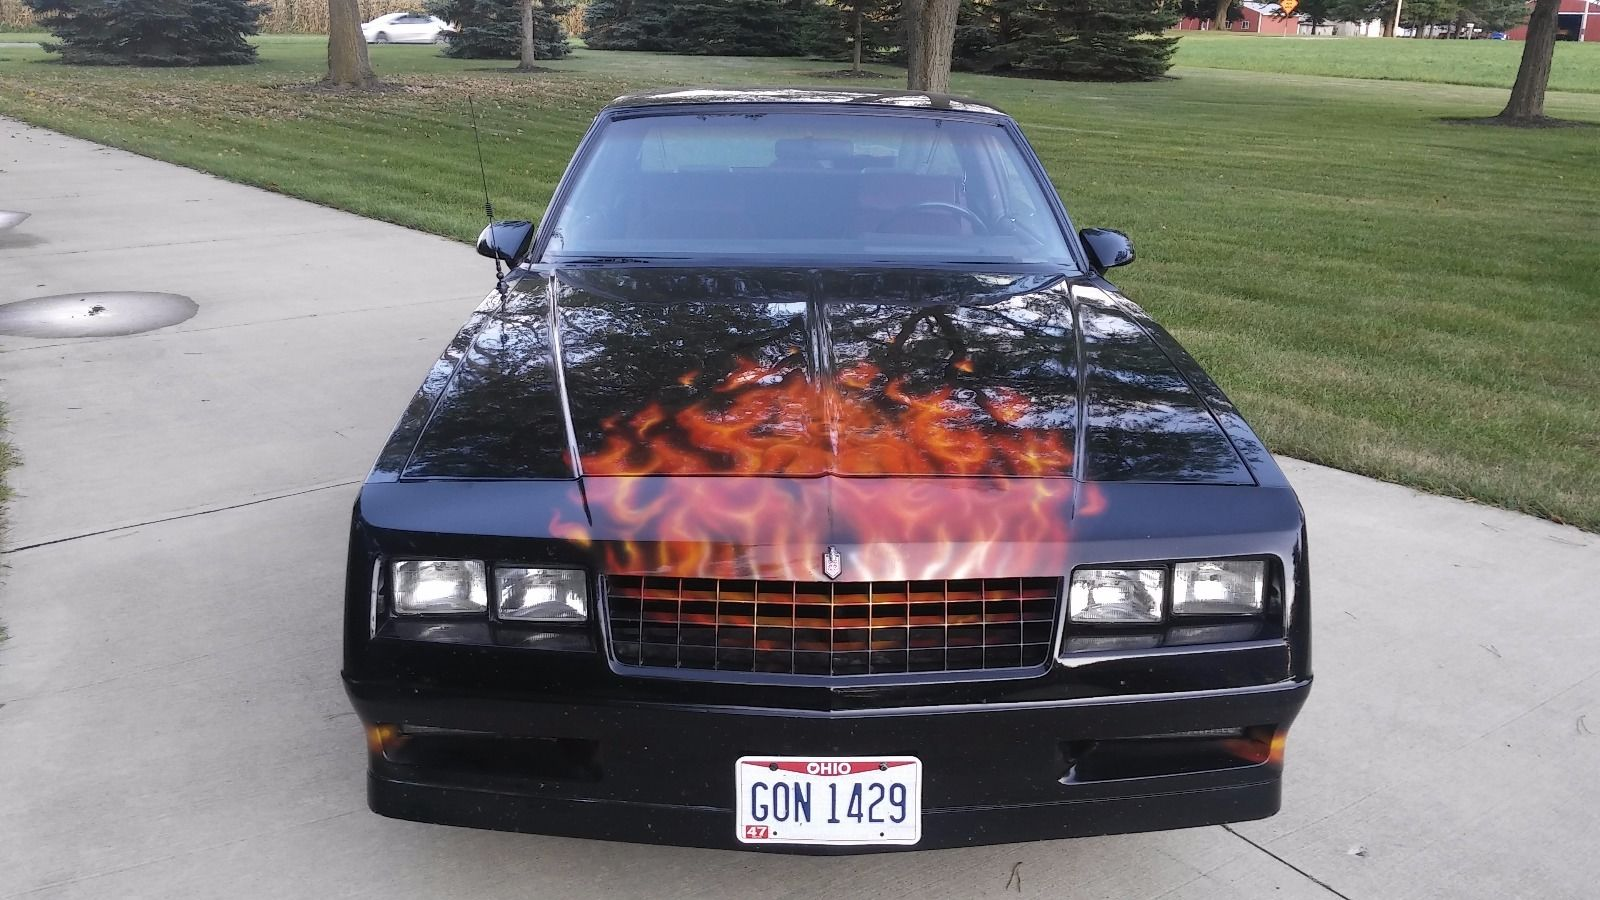 1987 Chevrolet Monte Carlo Ss Aero Coupe For Sale